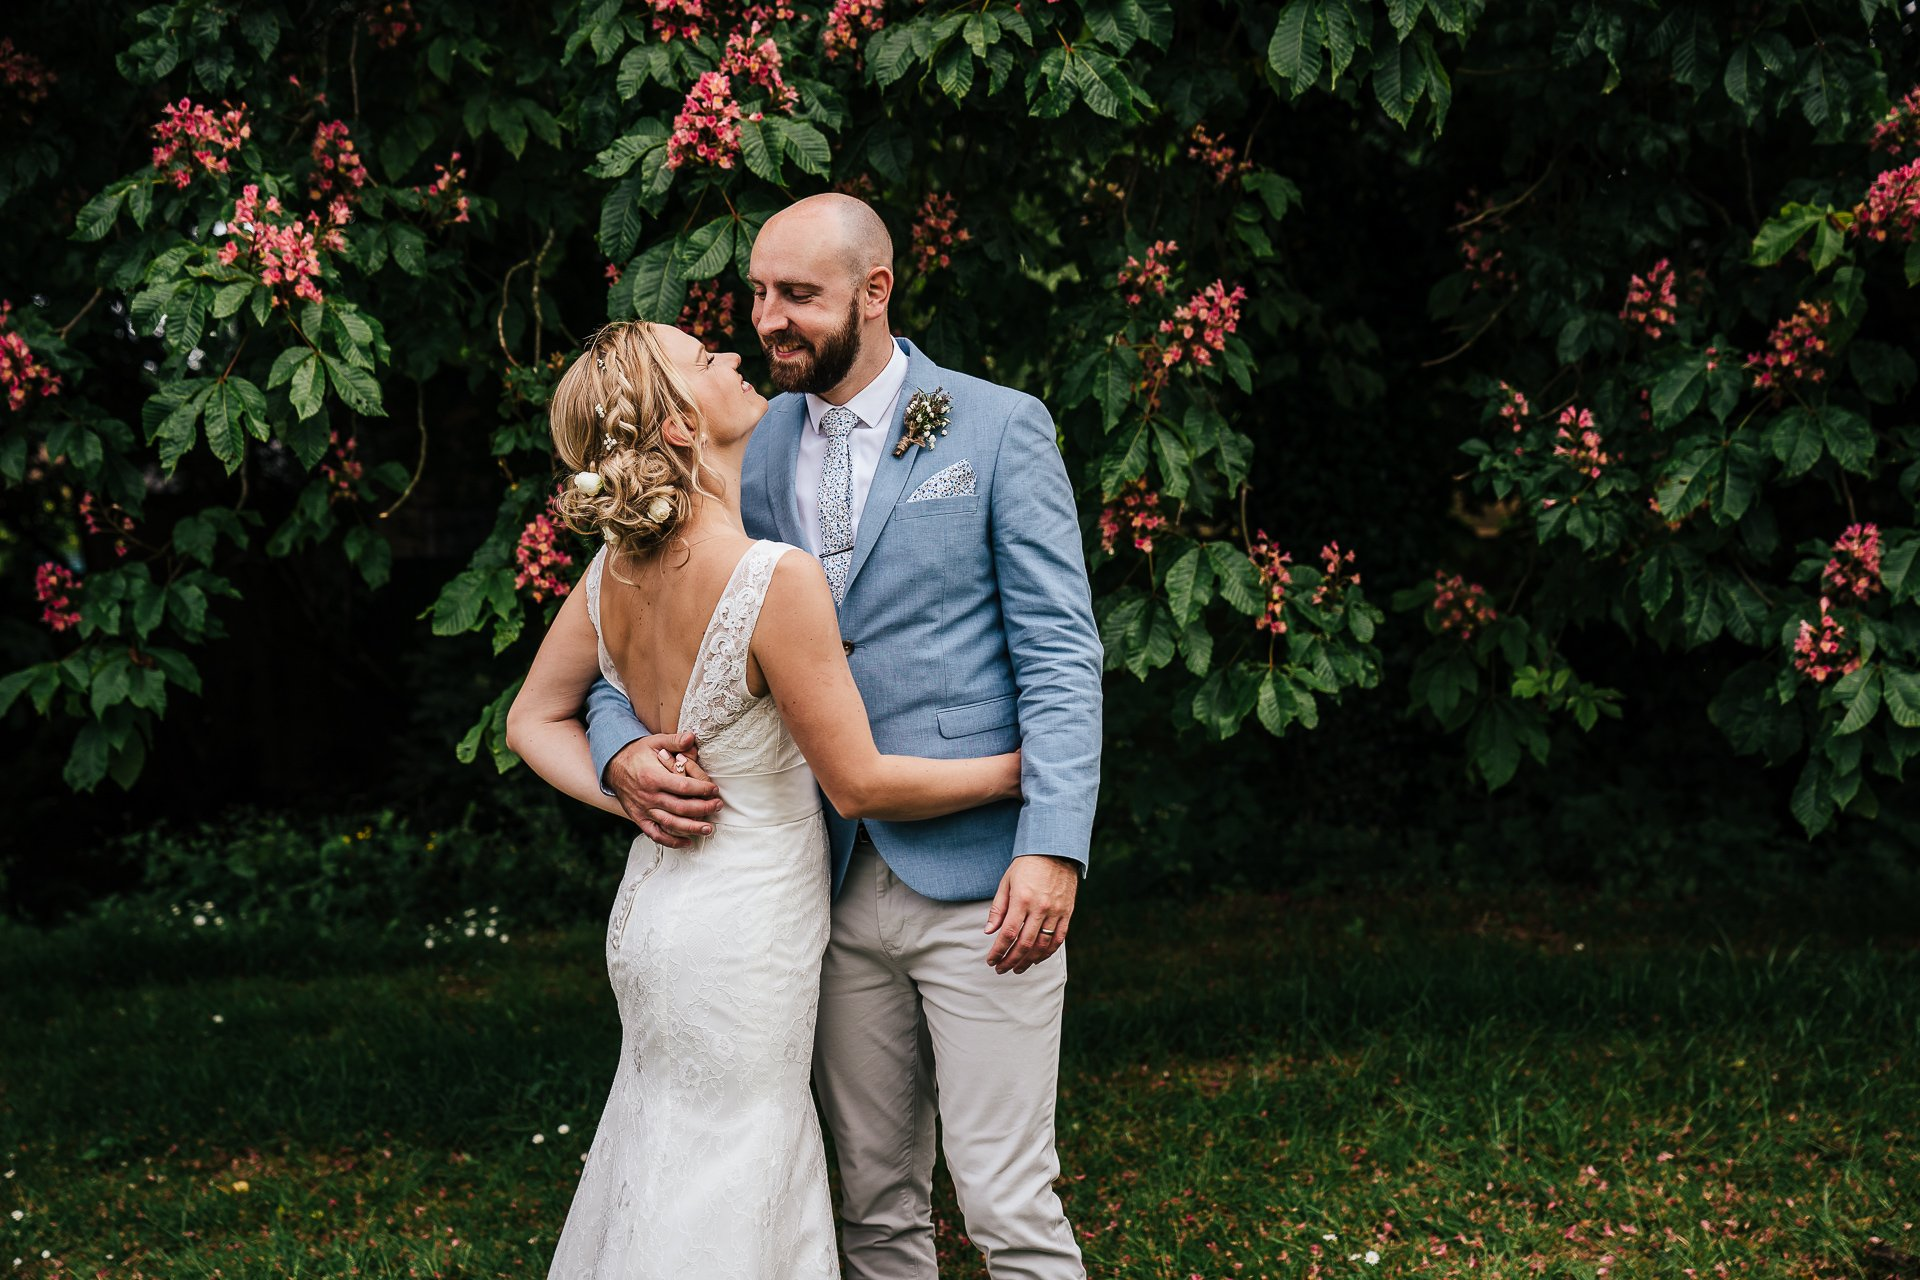 Newly wed couple embracing during bridal portraits